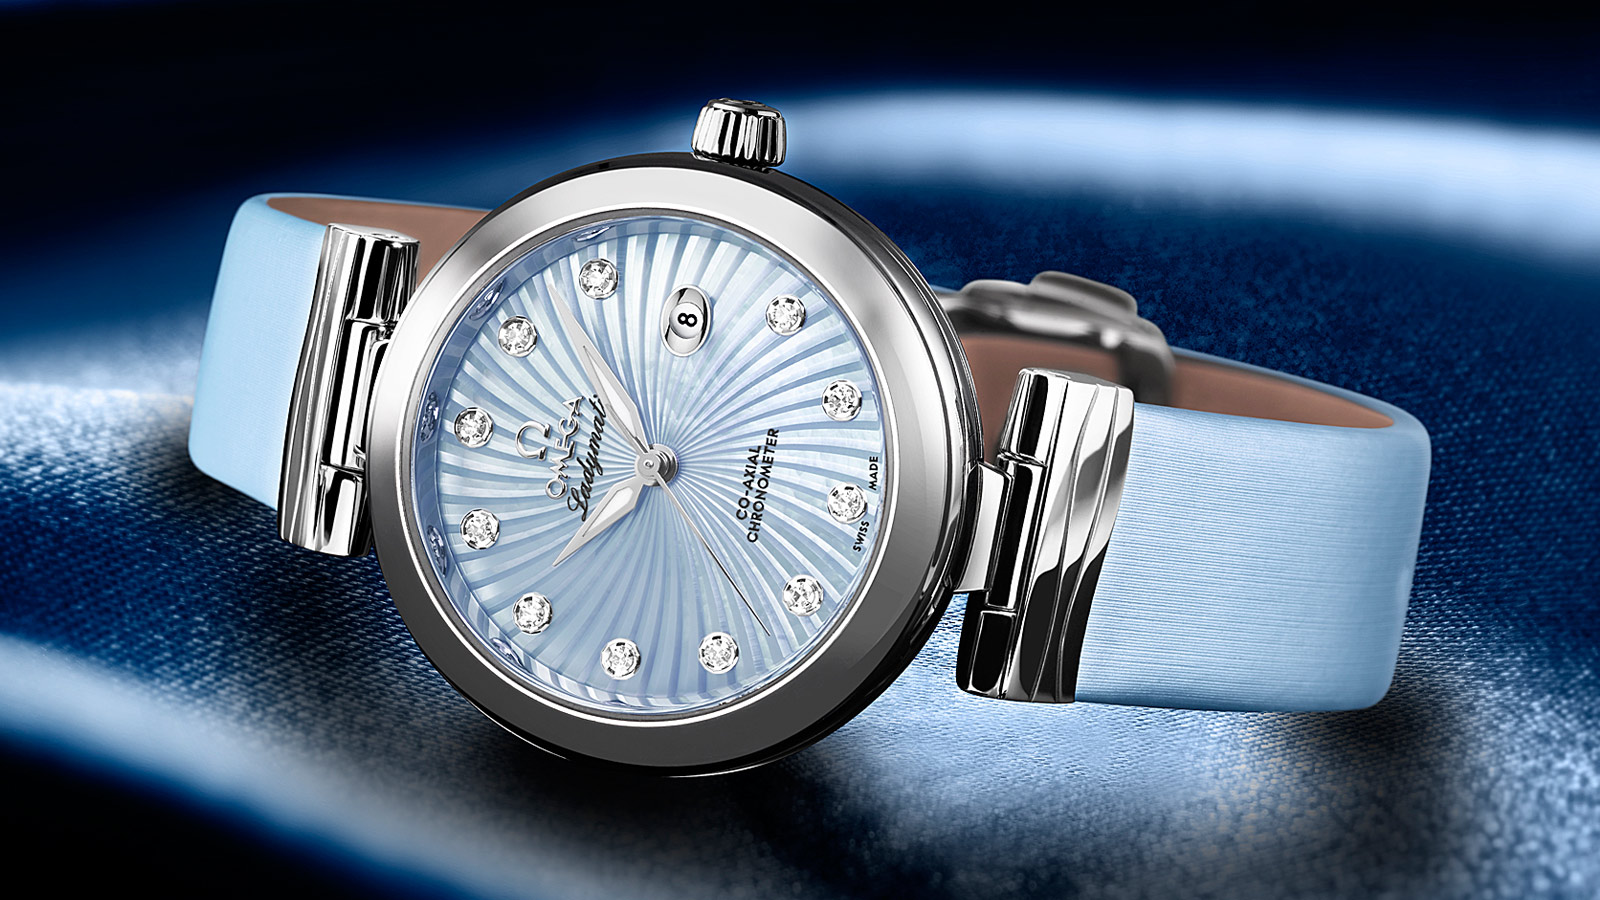 De Ville Ladymatic Ladymatic Omega Co‑Axial 34 mm - 425.32.34.20.57.002 - Vista 1